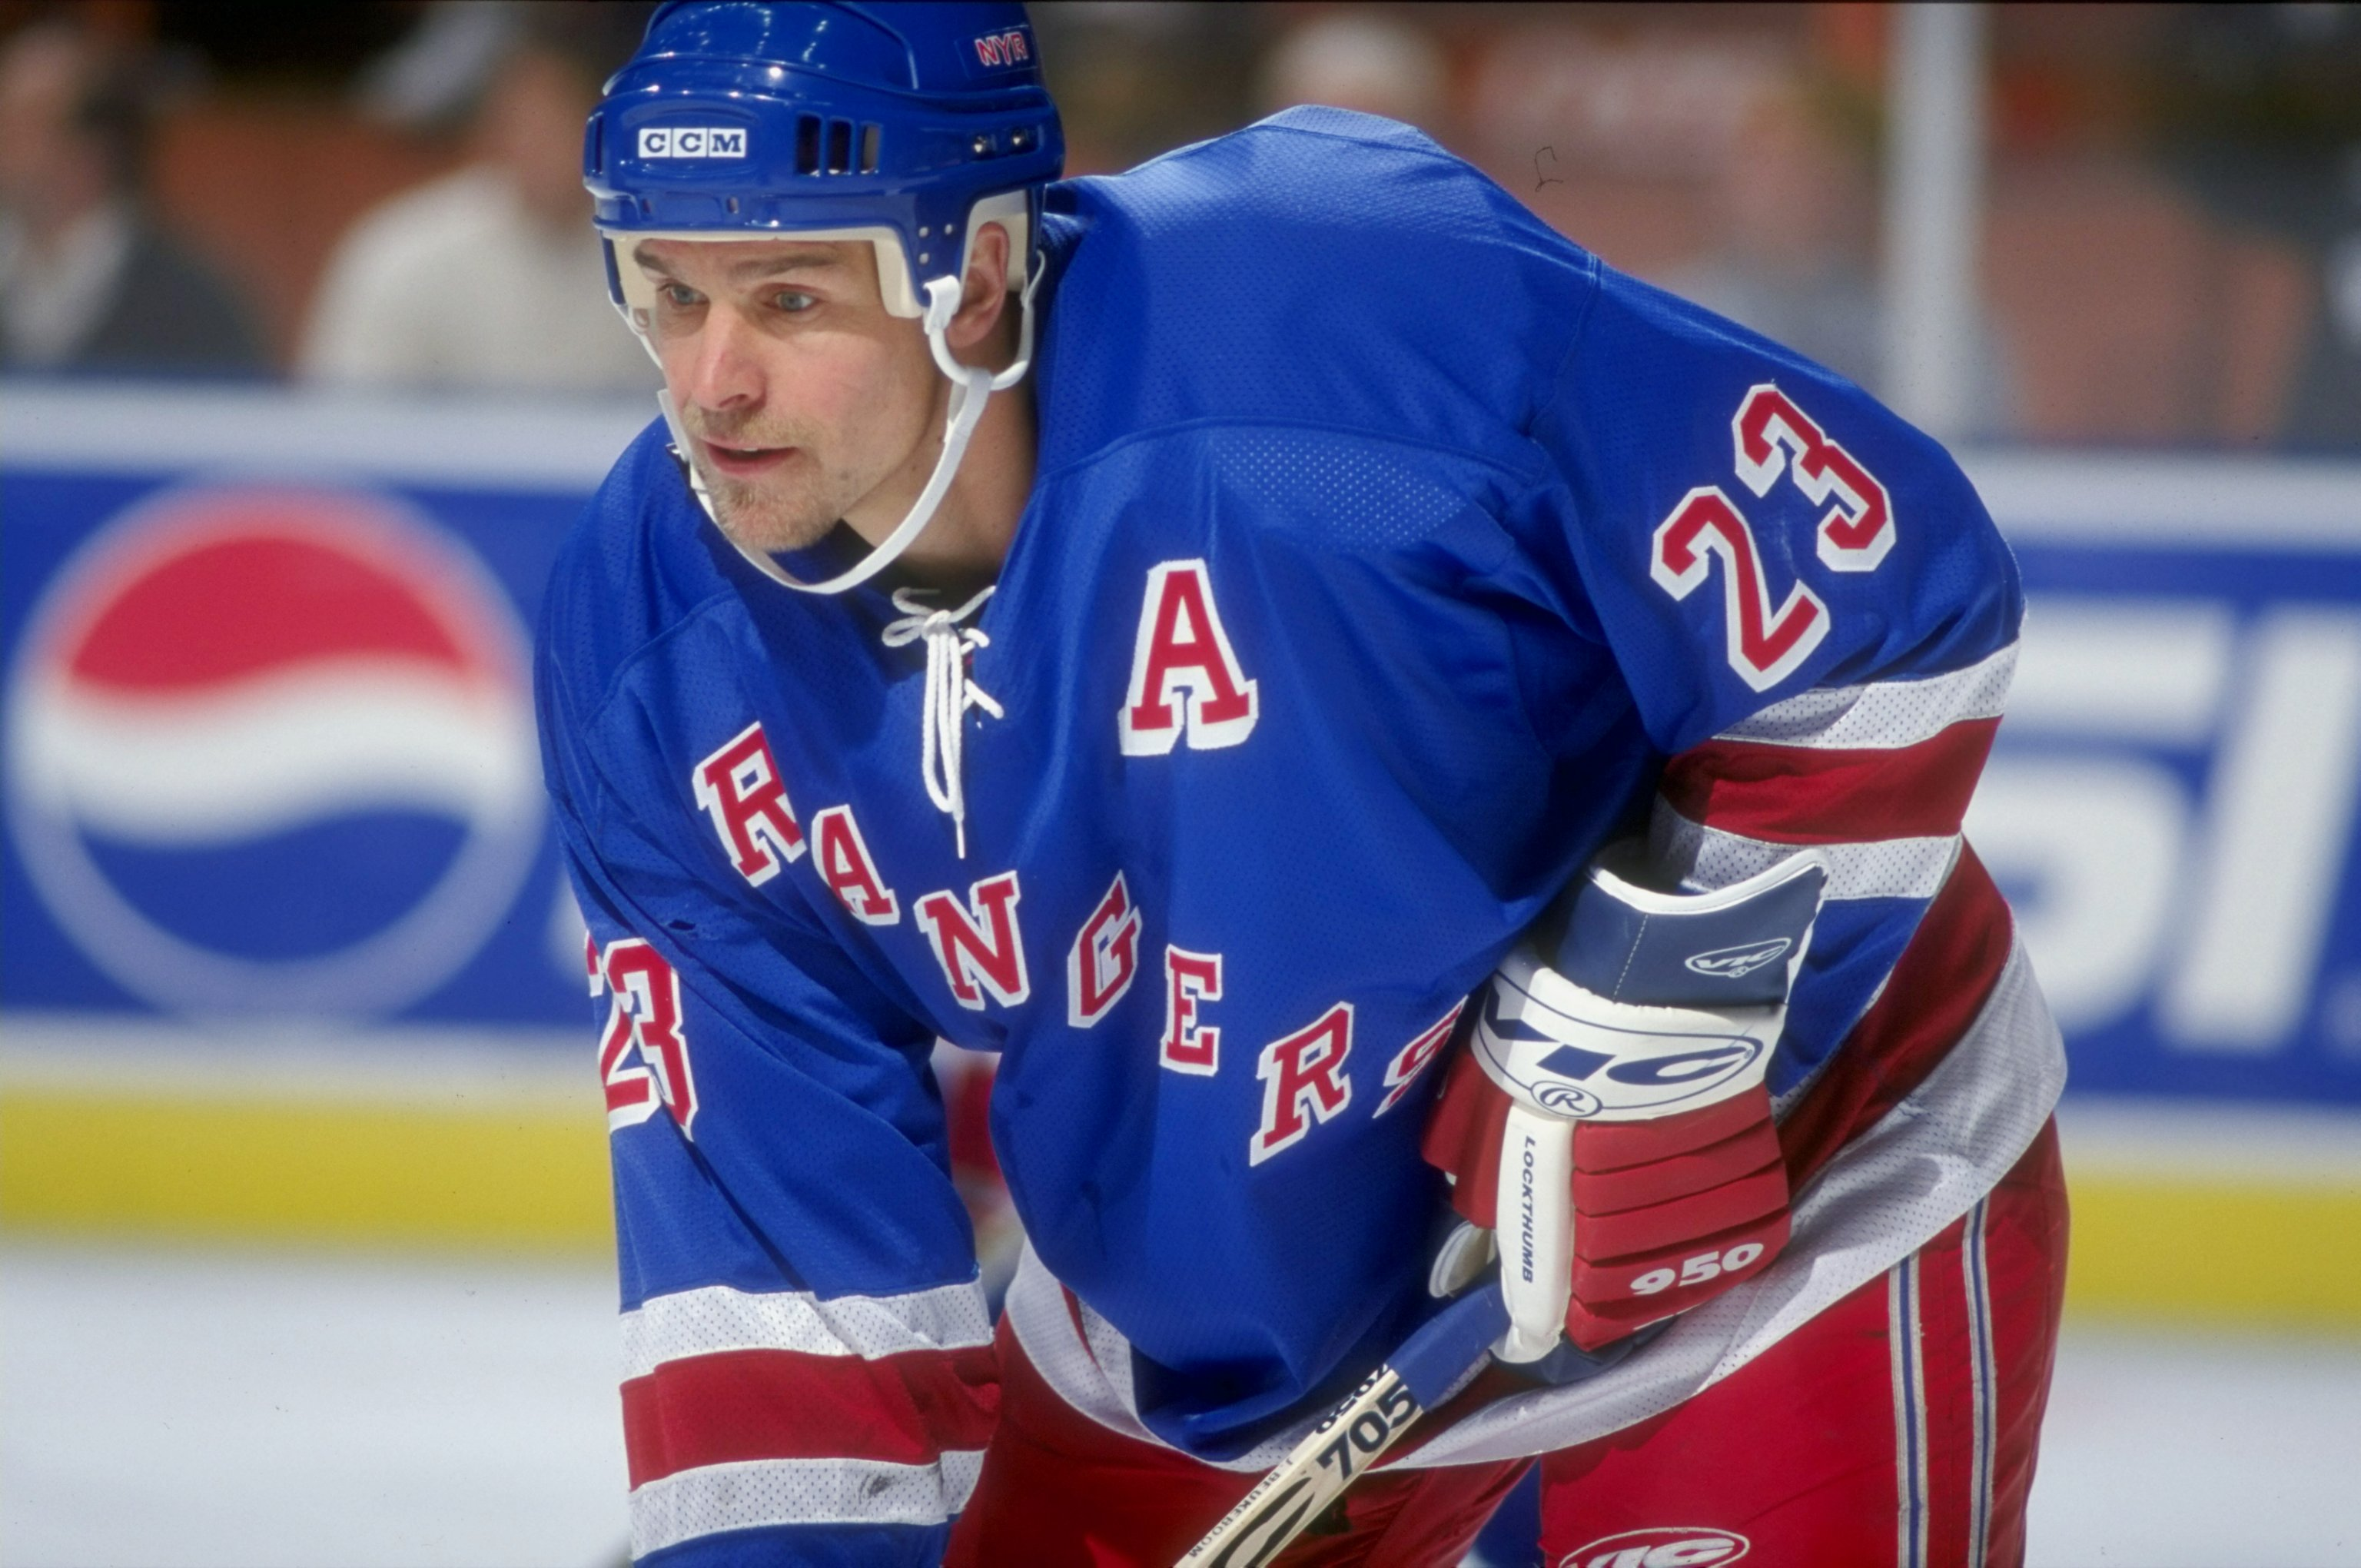 19 Nov 1998: Defenseman Jeff Beukeboom #23 of the New York Rangers in action during the game against the Los Angeles Kings at the Great Western Forum in Inglewood, California. The Rangers defeated the Kings 5-1.